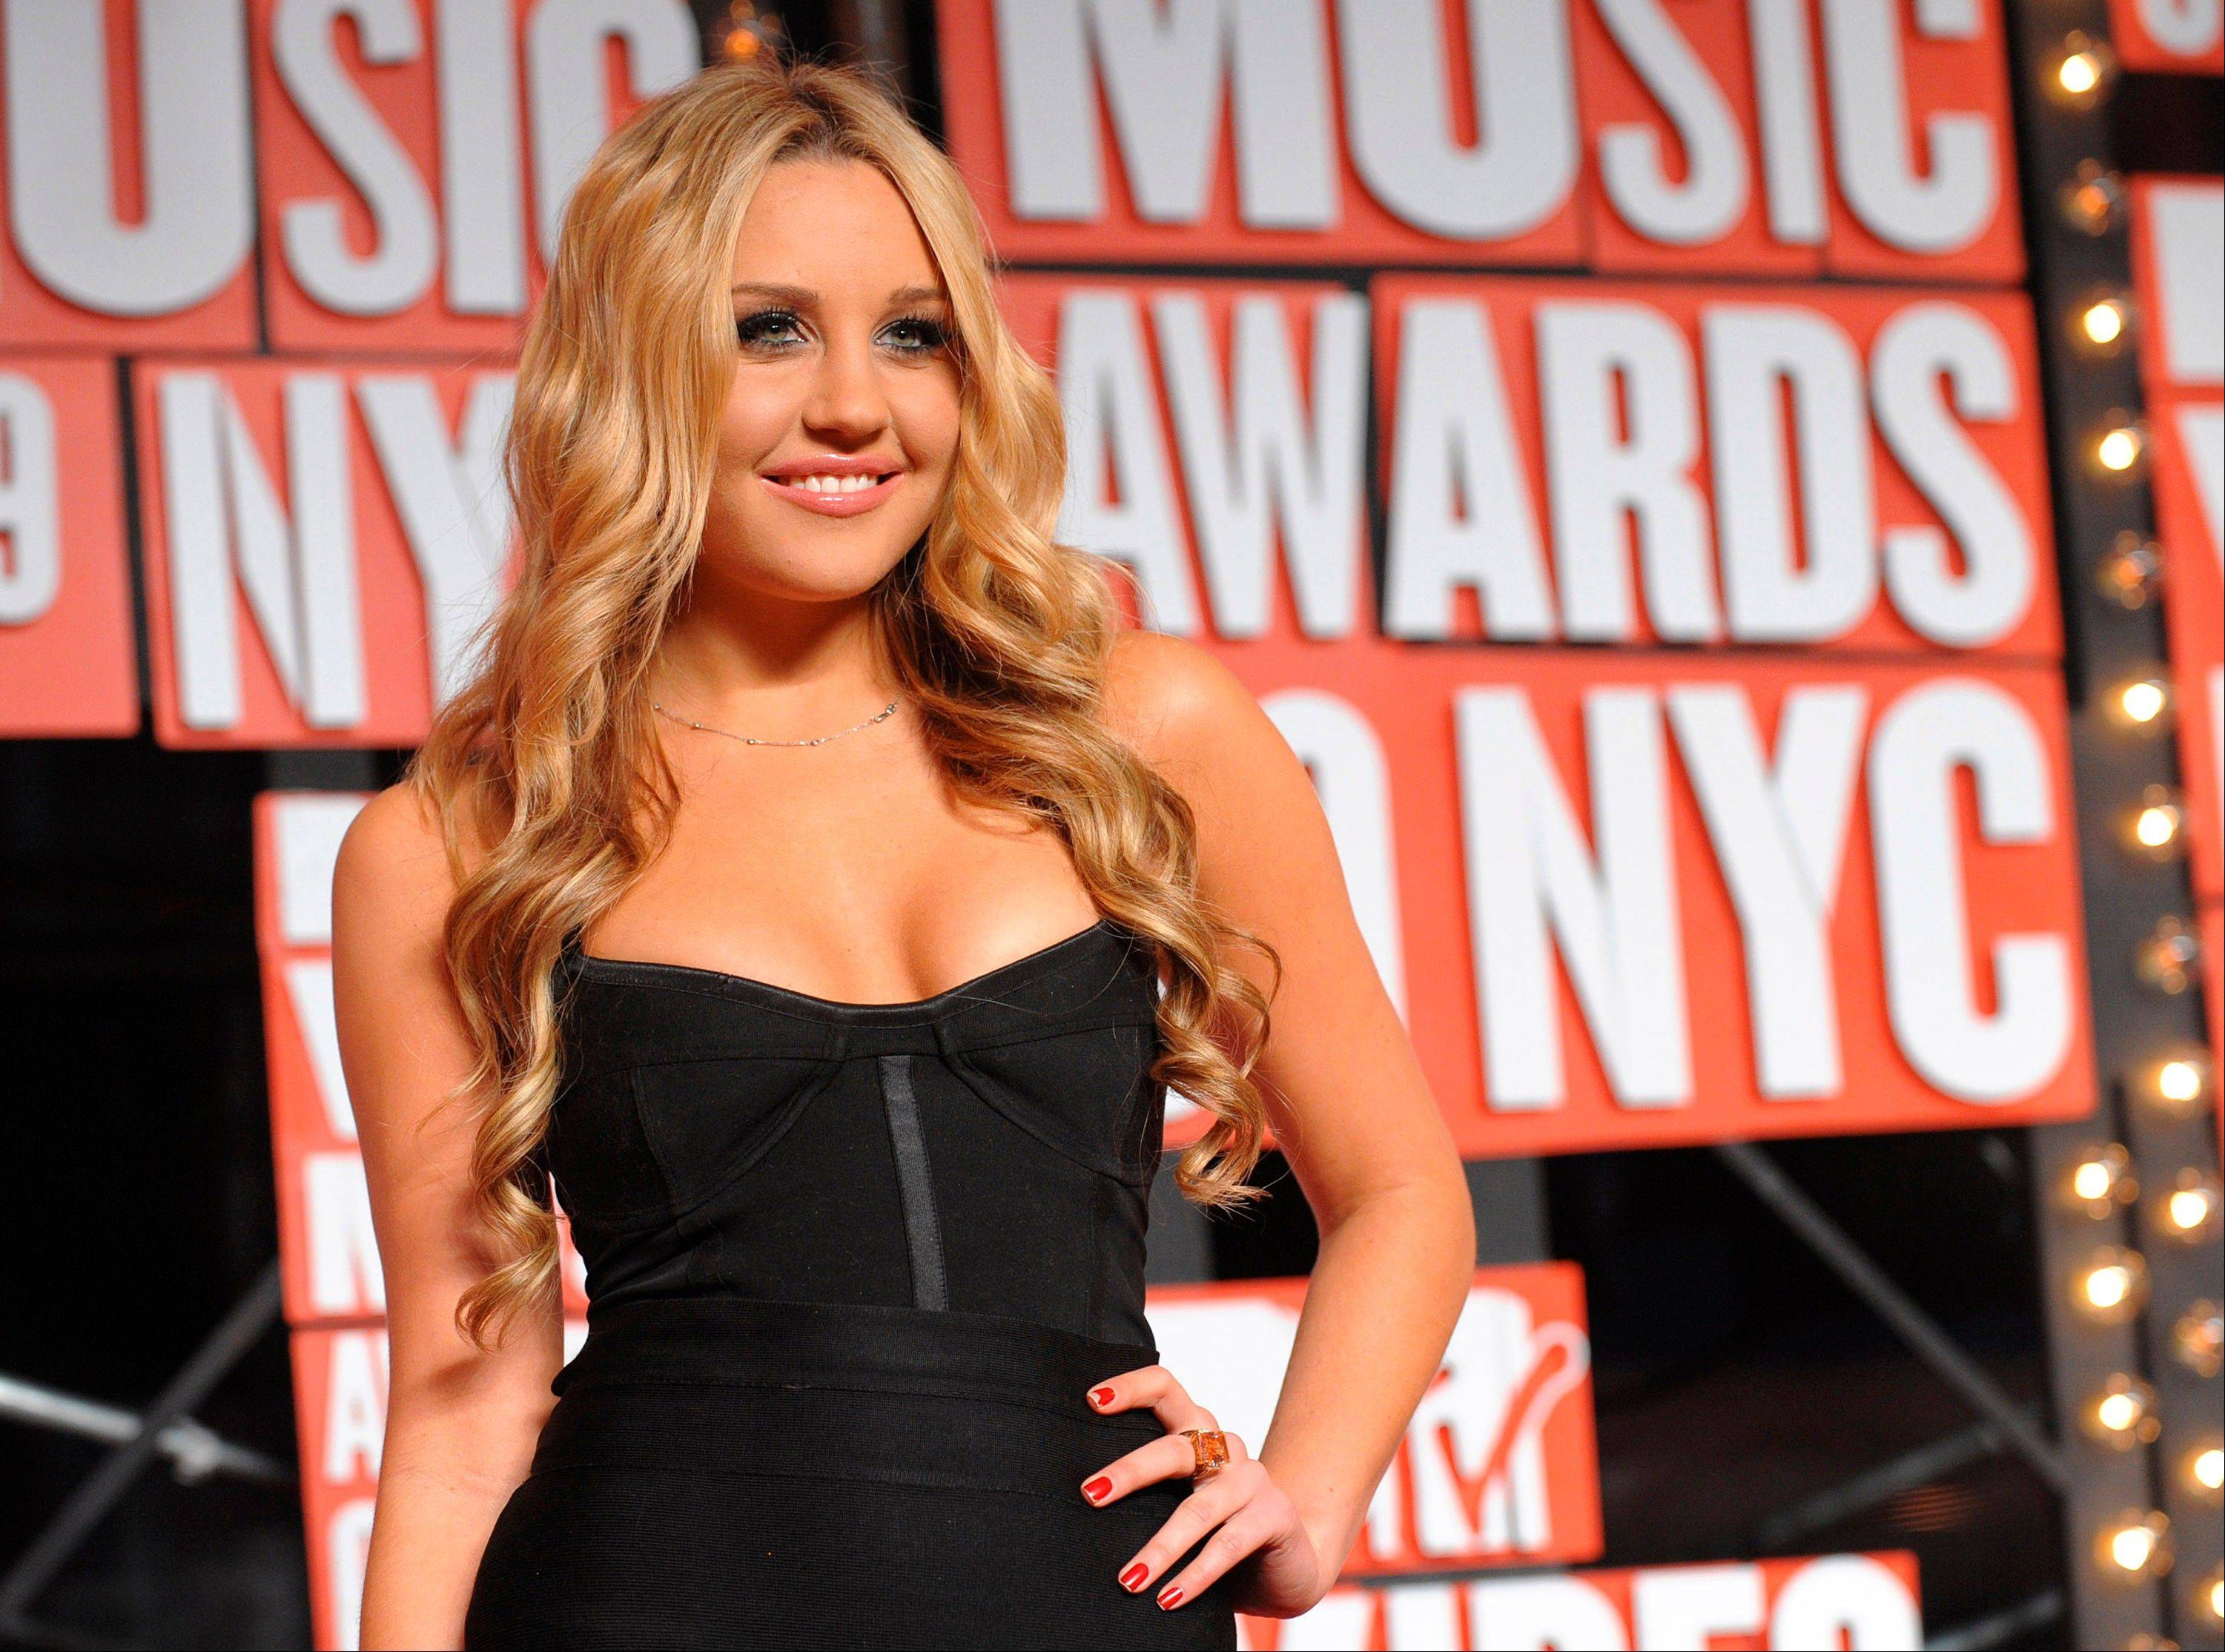 Los Angeles prosecutors charged Amanda Bynes with two counts of misdemeanor hit-and-run on Tuesday. The actress faces up to a year in jail or $2,000 fine if convicted of both counts.